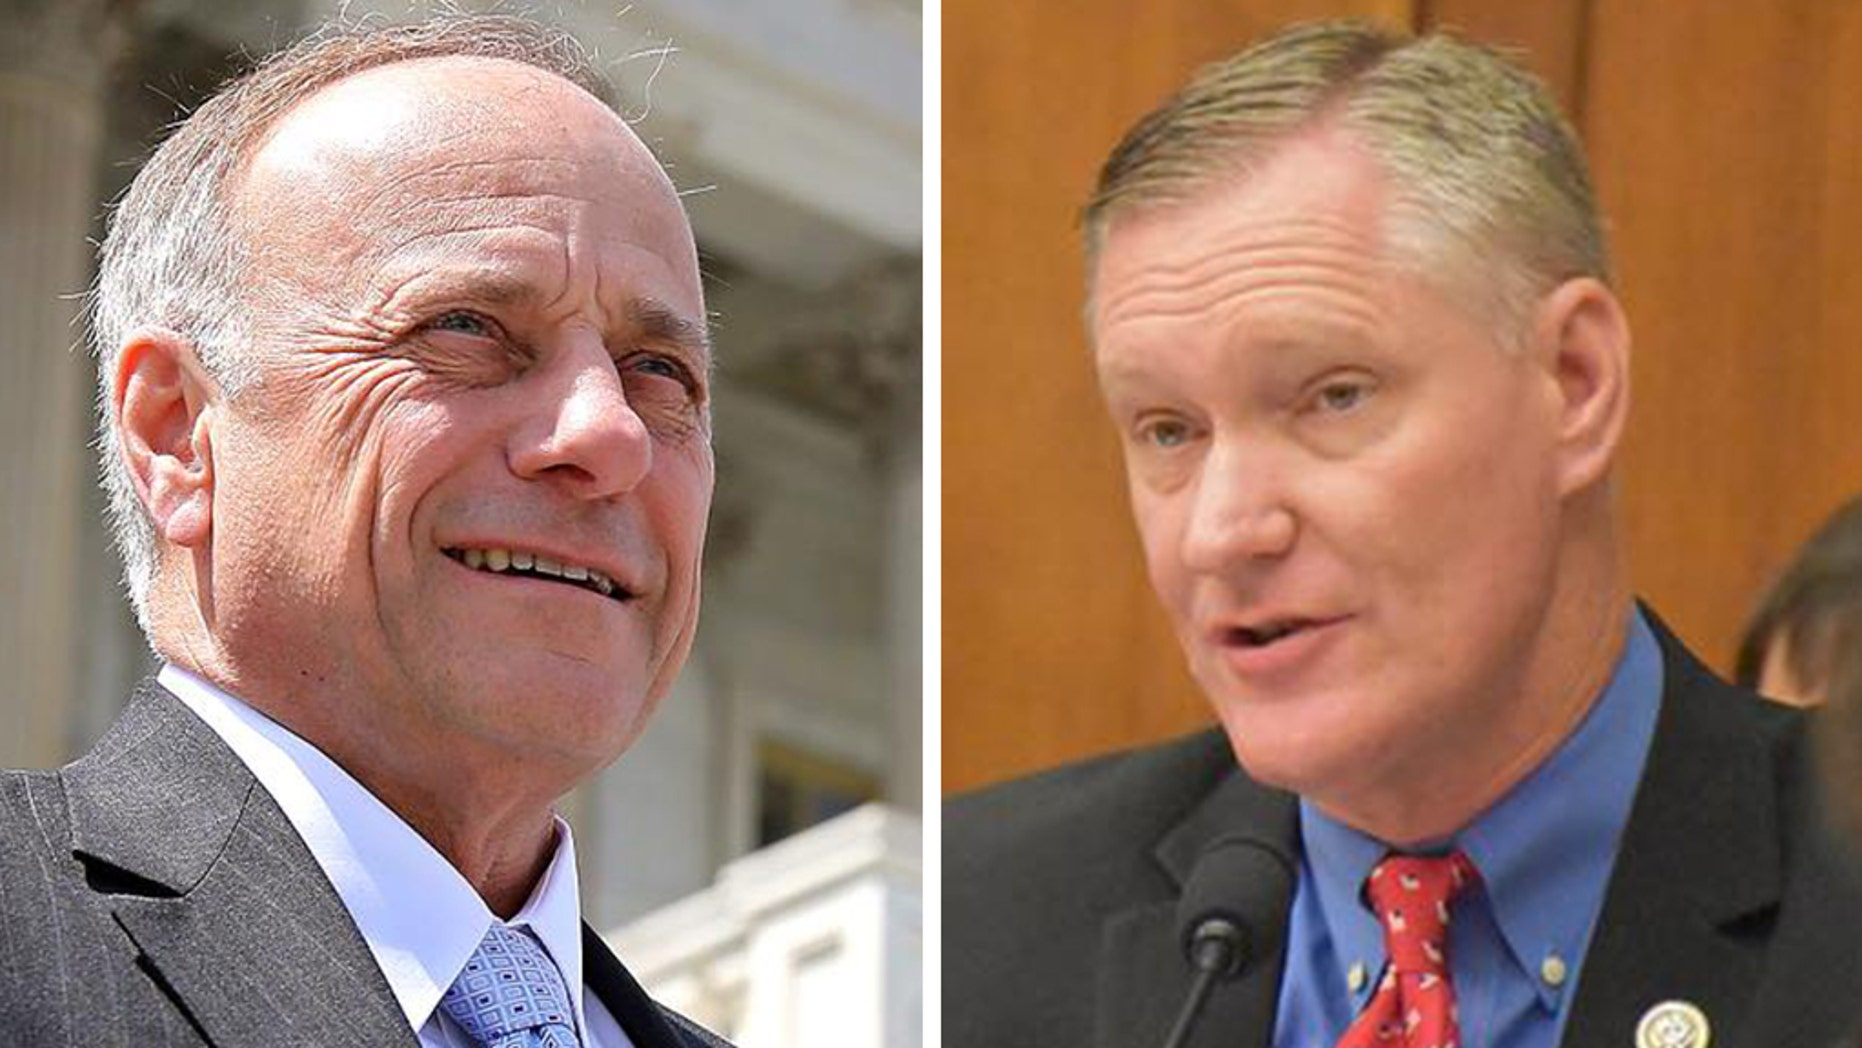 GOP Campaign Chief Condemns Steve King Over White Supremacist Rhetoric